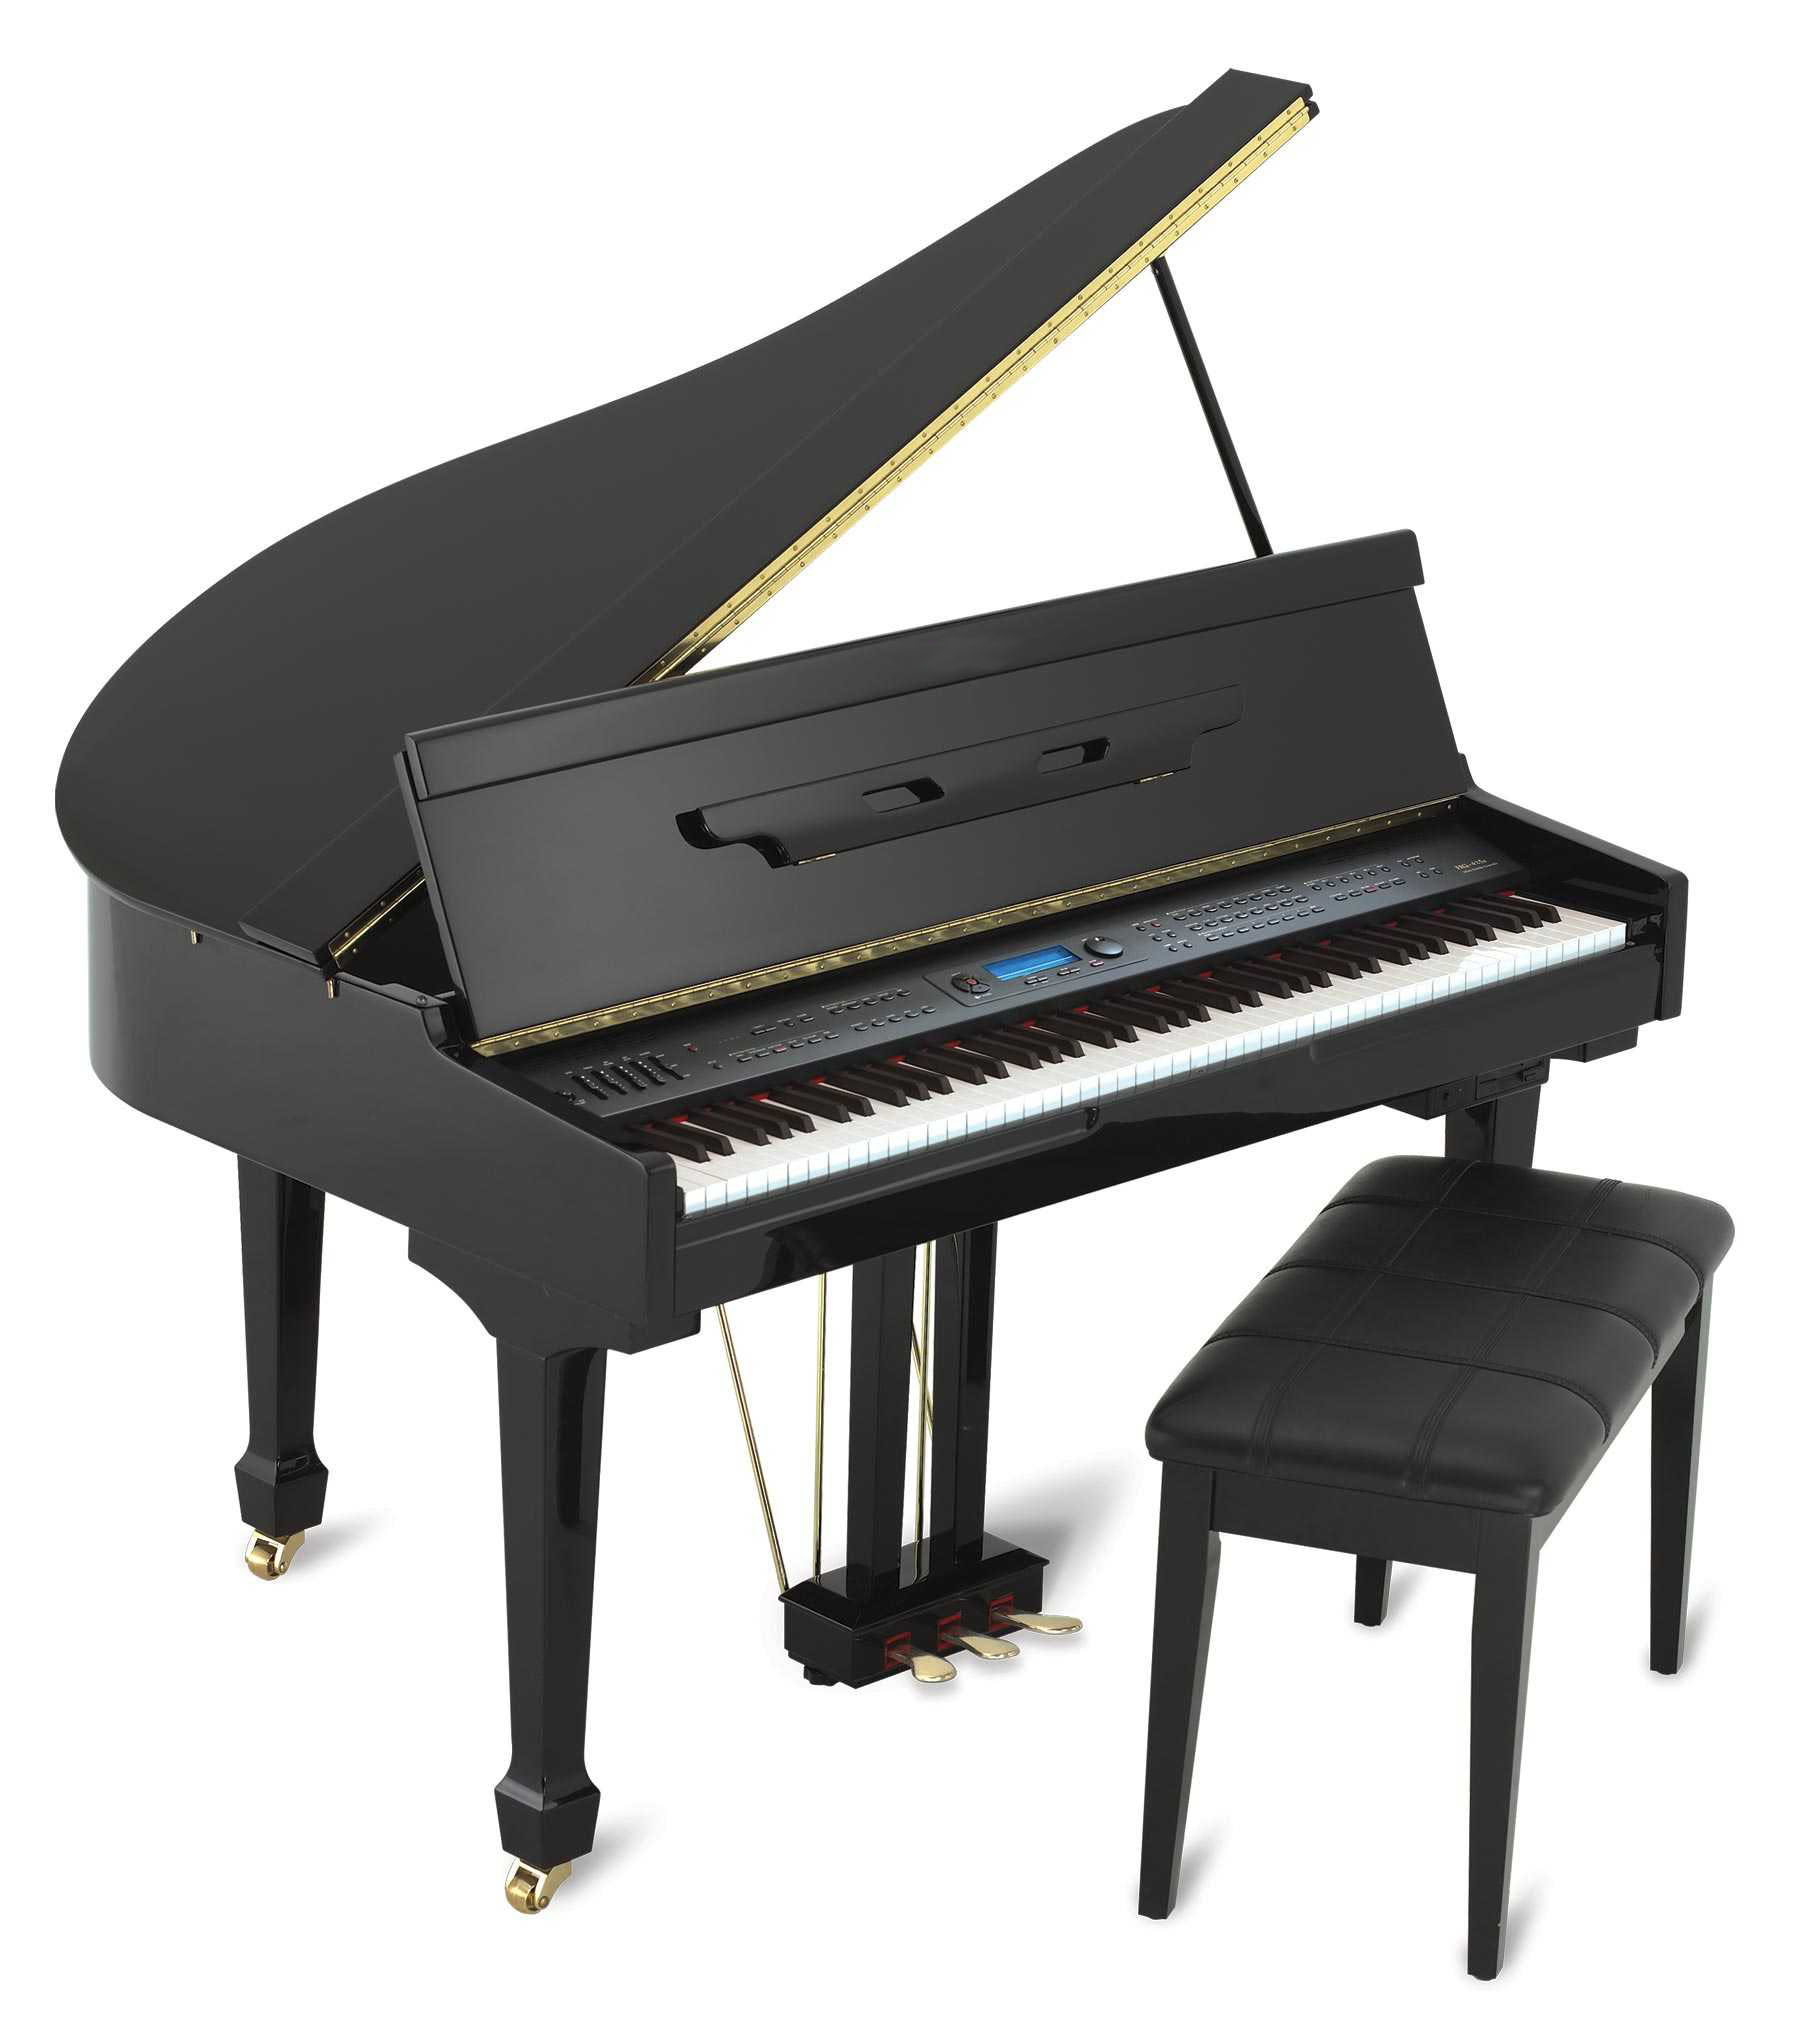 Stock photo of a grand piano